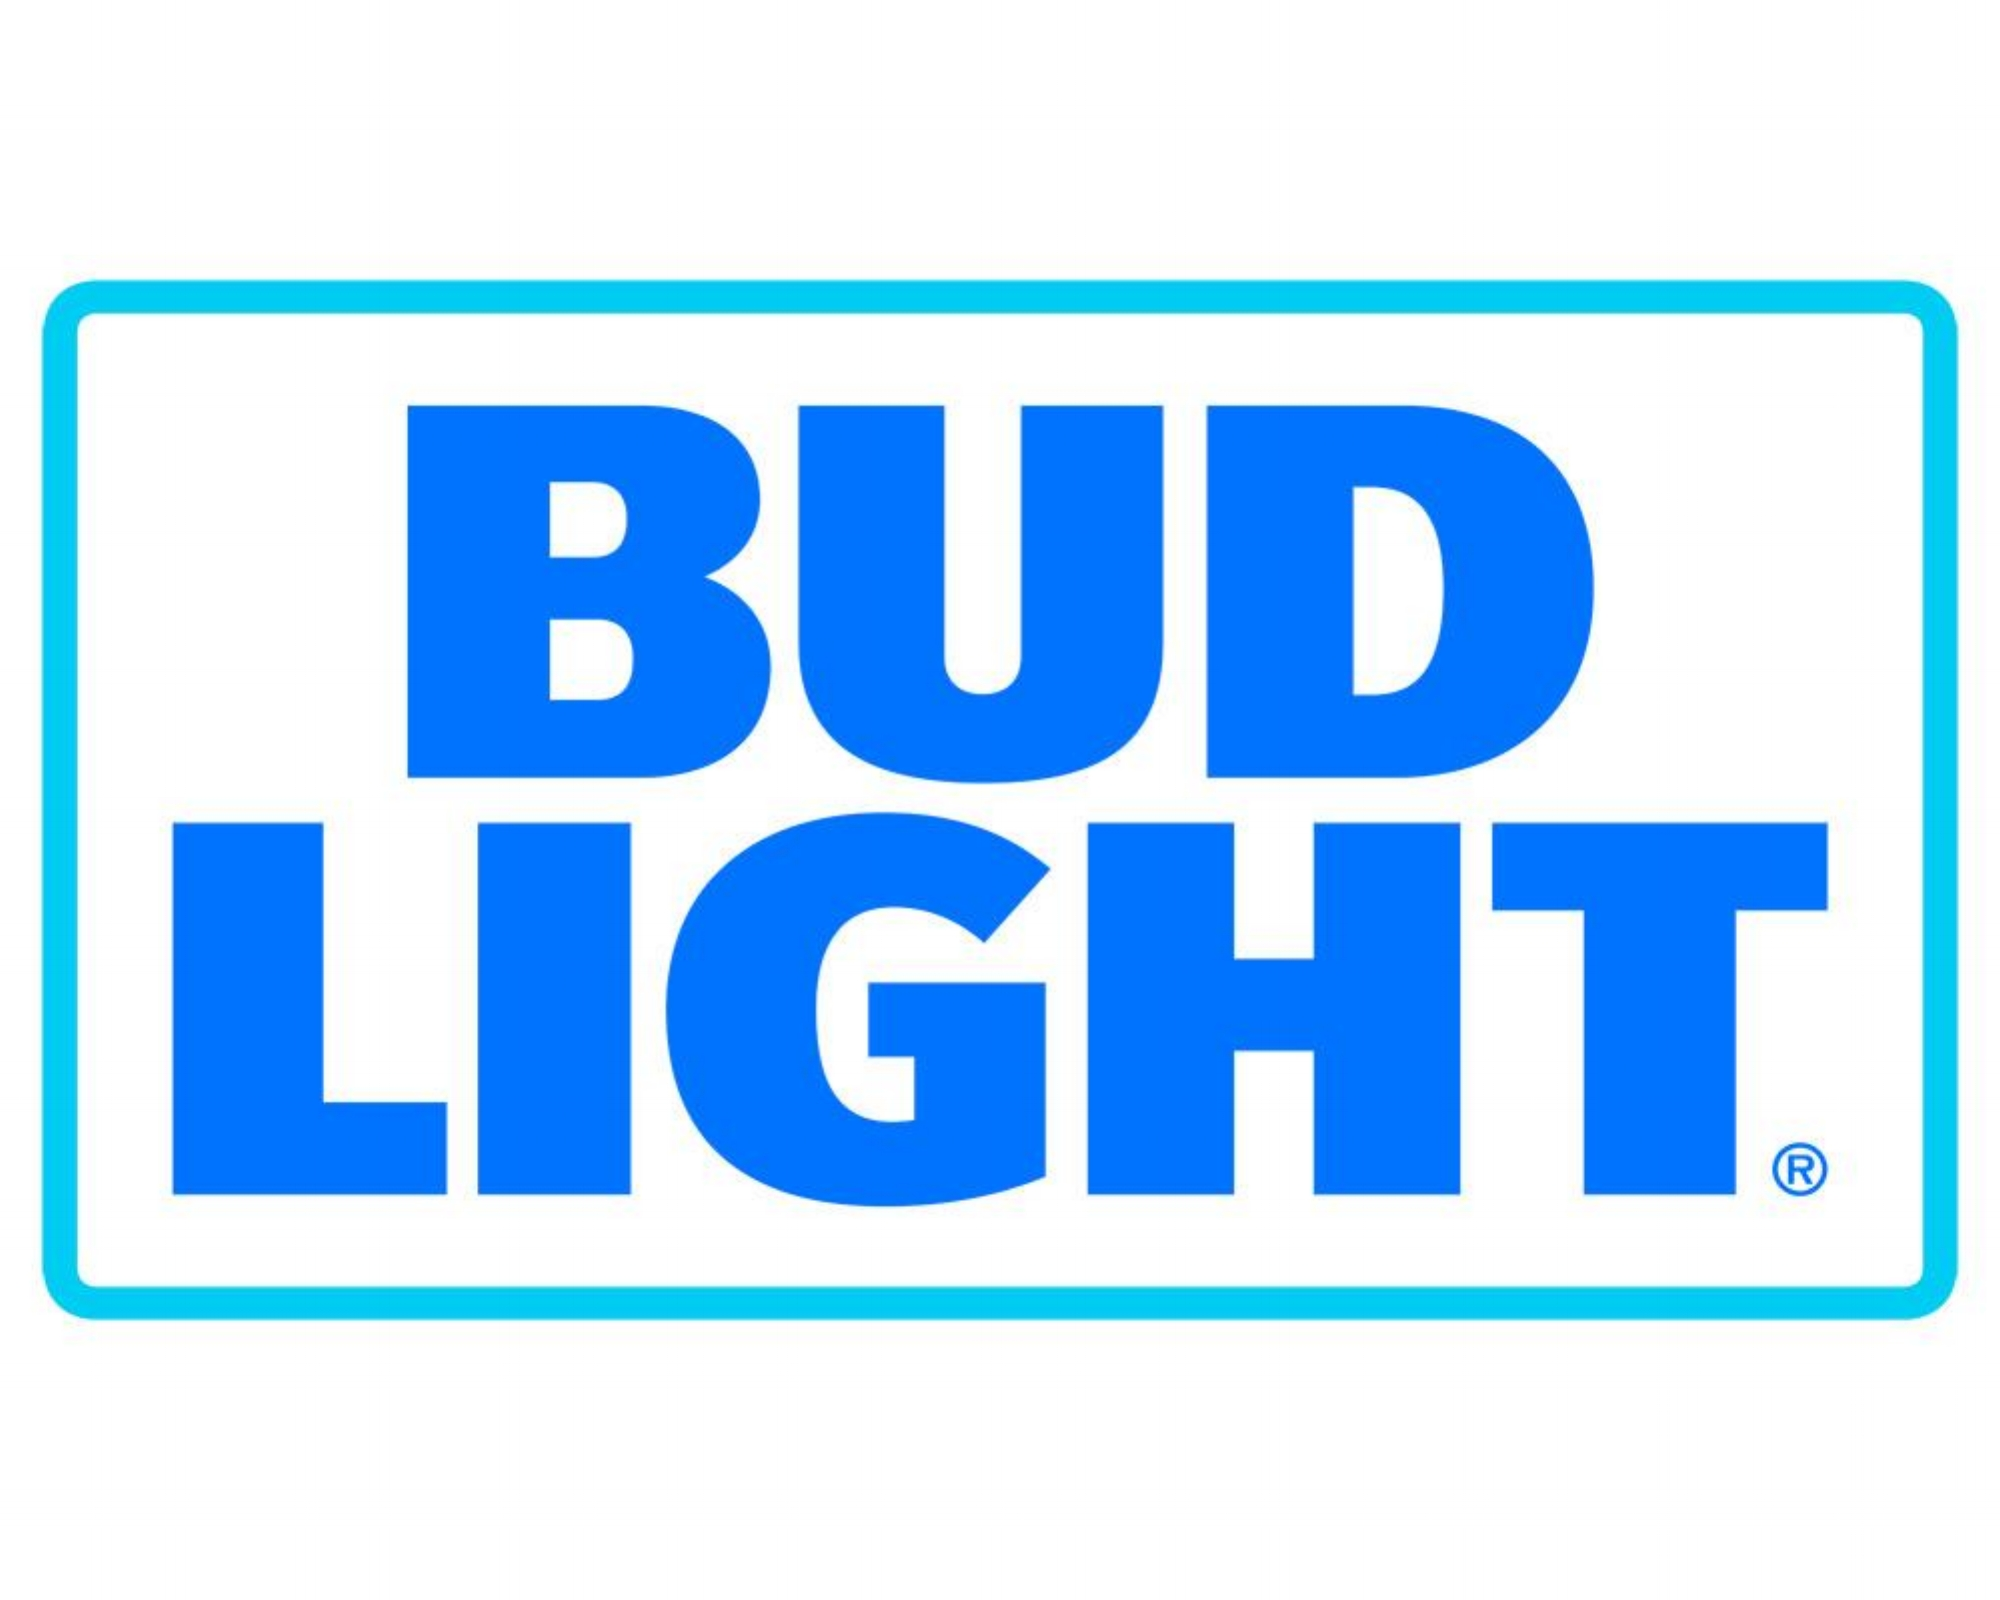 Bud Light jpeg.jpg